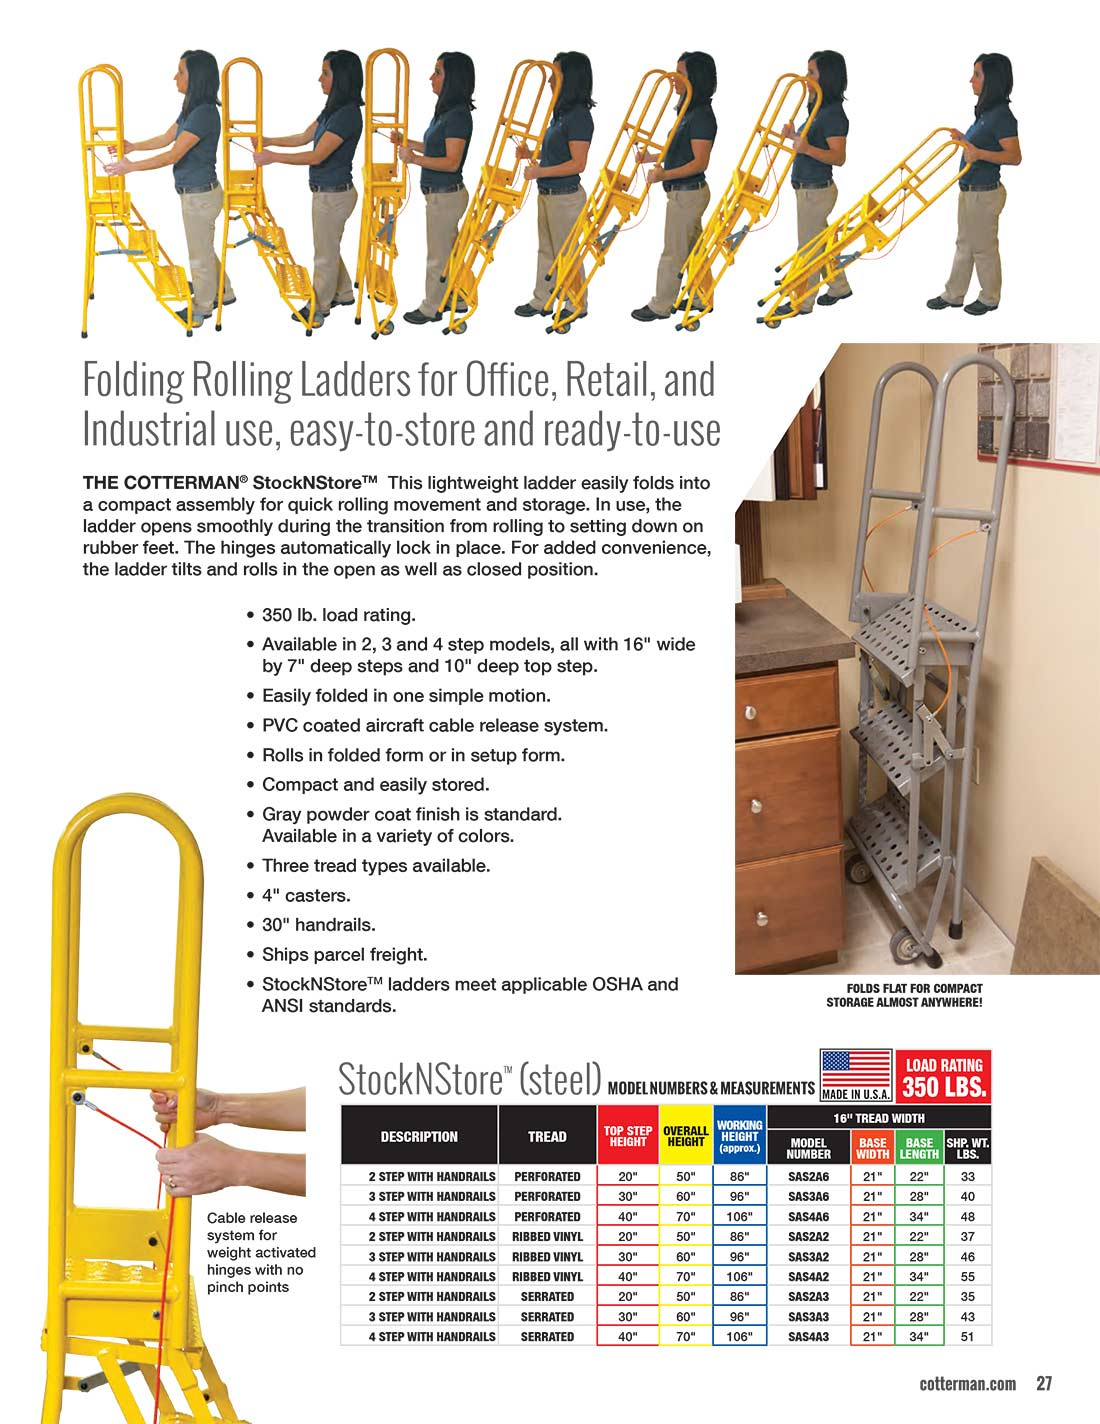 Cotterman Steel StockNStore Ladder Technical Specs